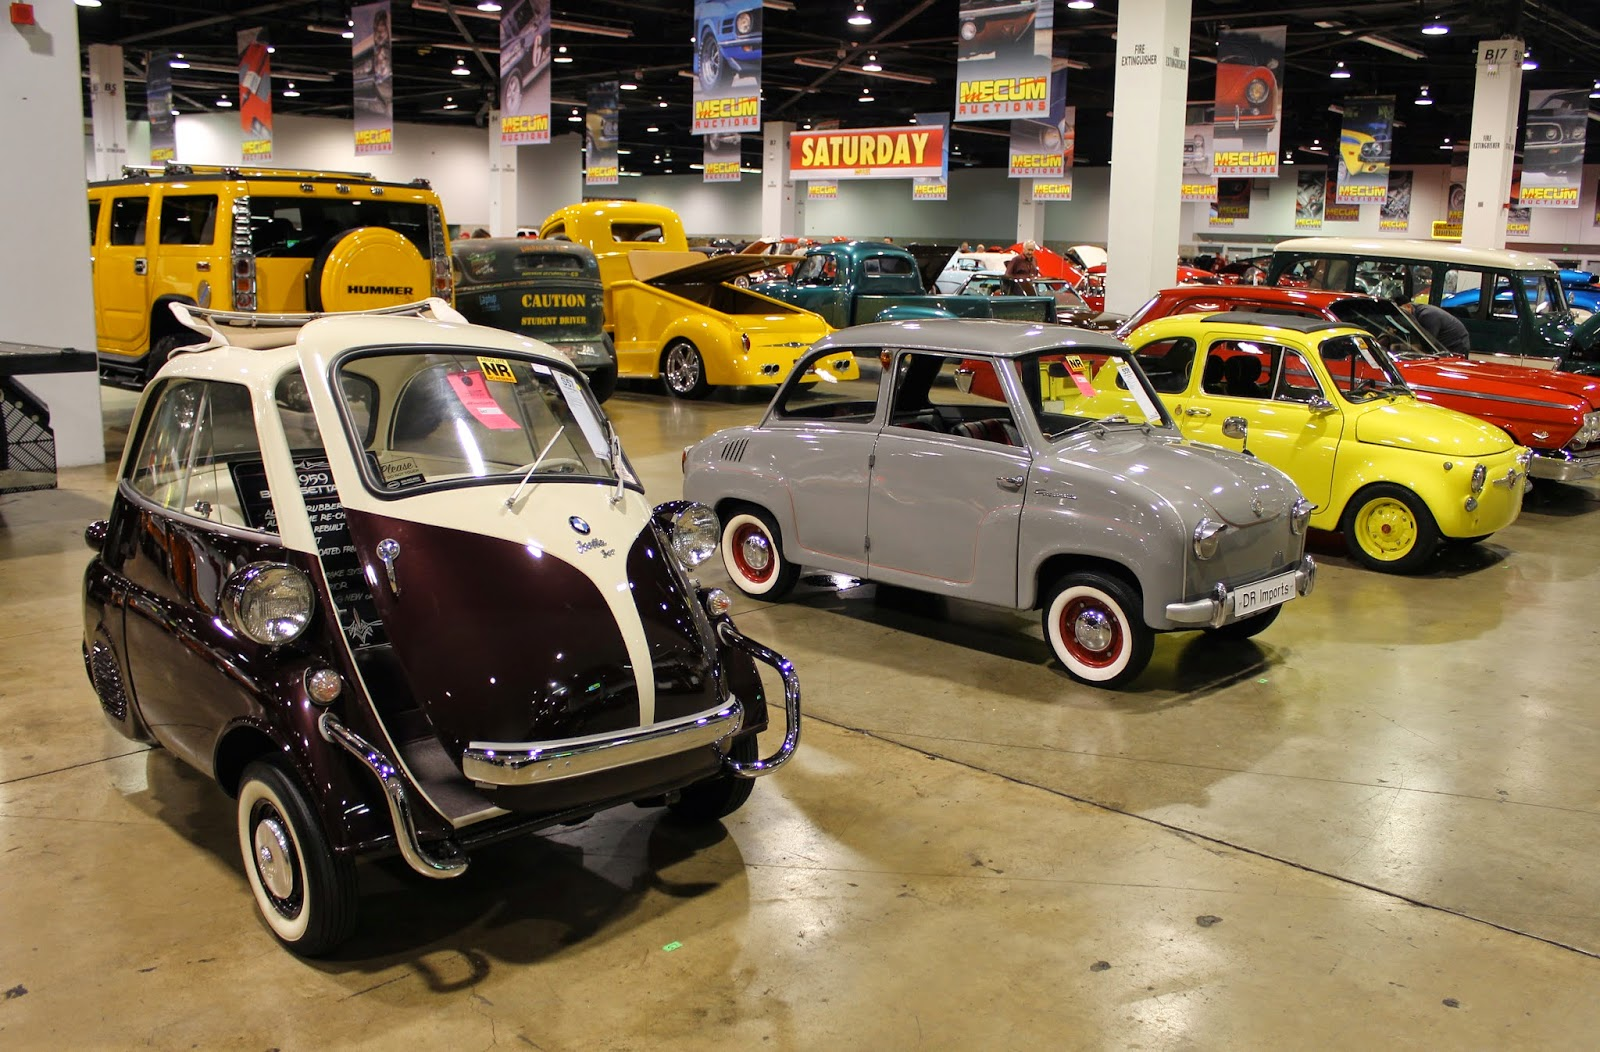 Covering Classic Cars : Mecum Auto Auction at the Anaheim ...